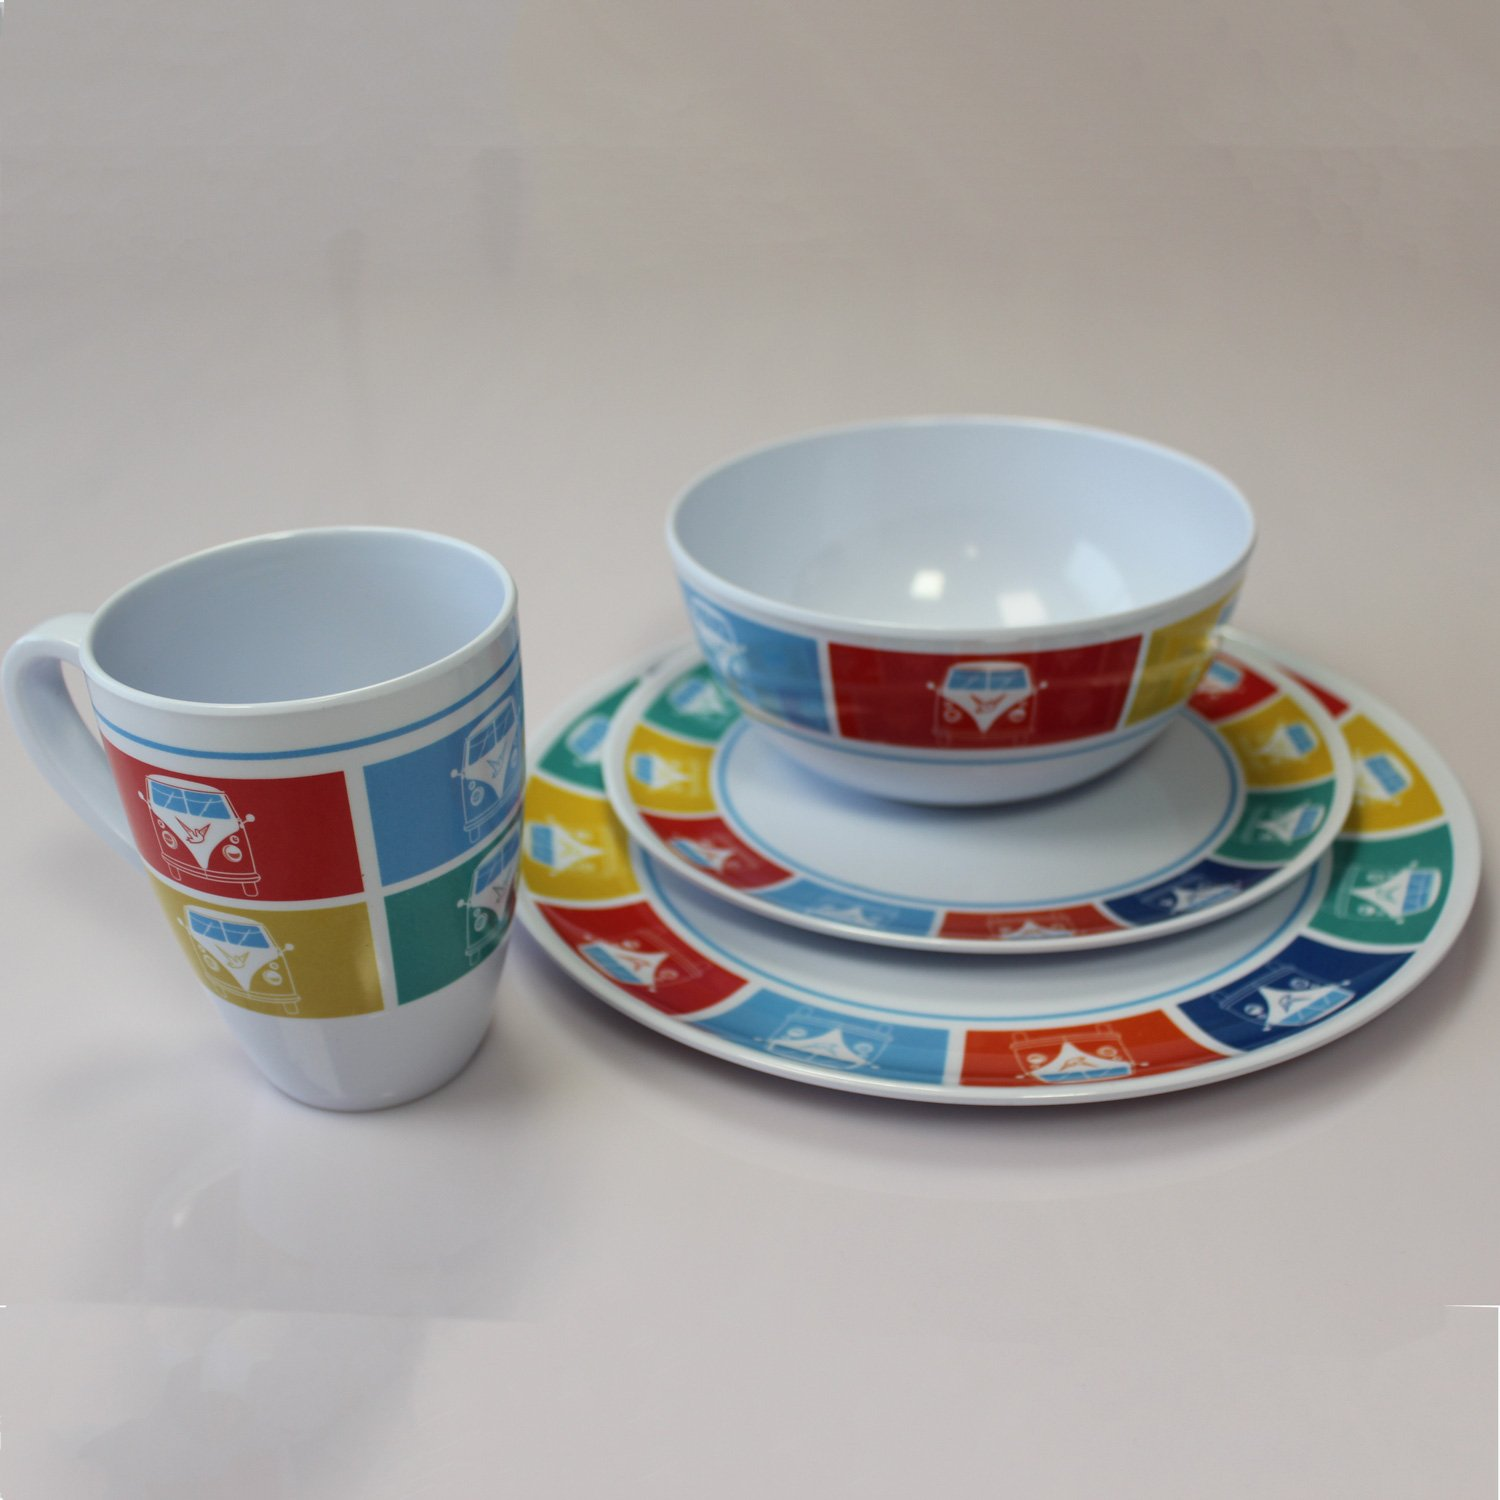 Outdoor Revolution Melamine Tableware (Retro Camper Design)